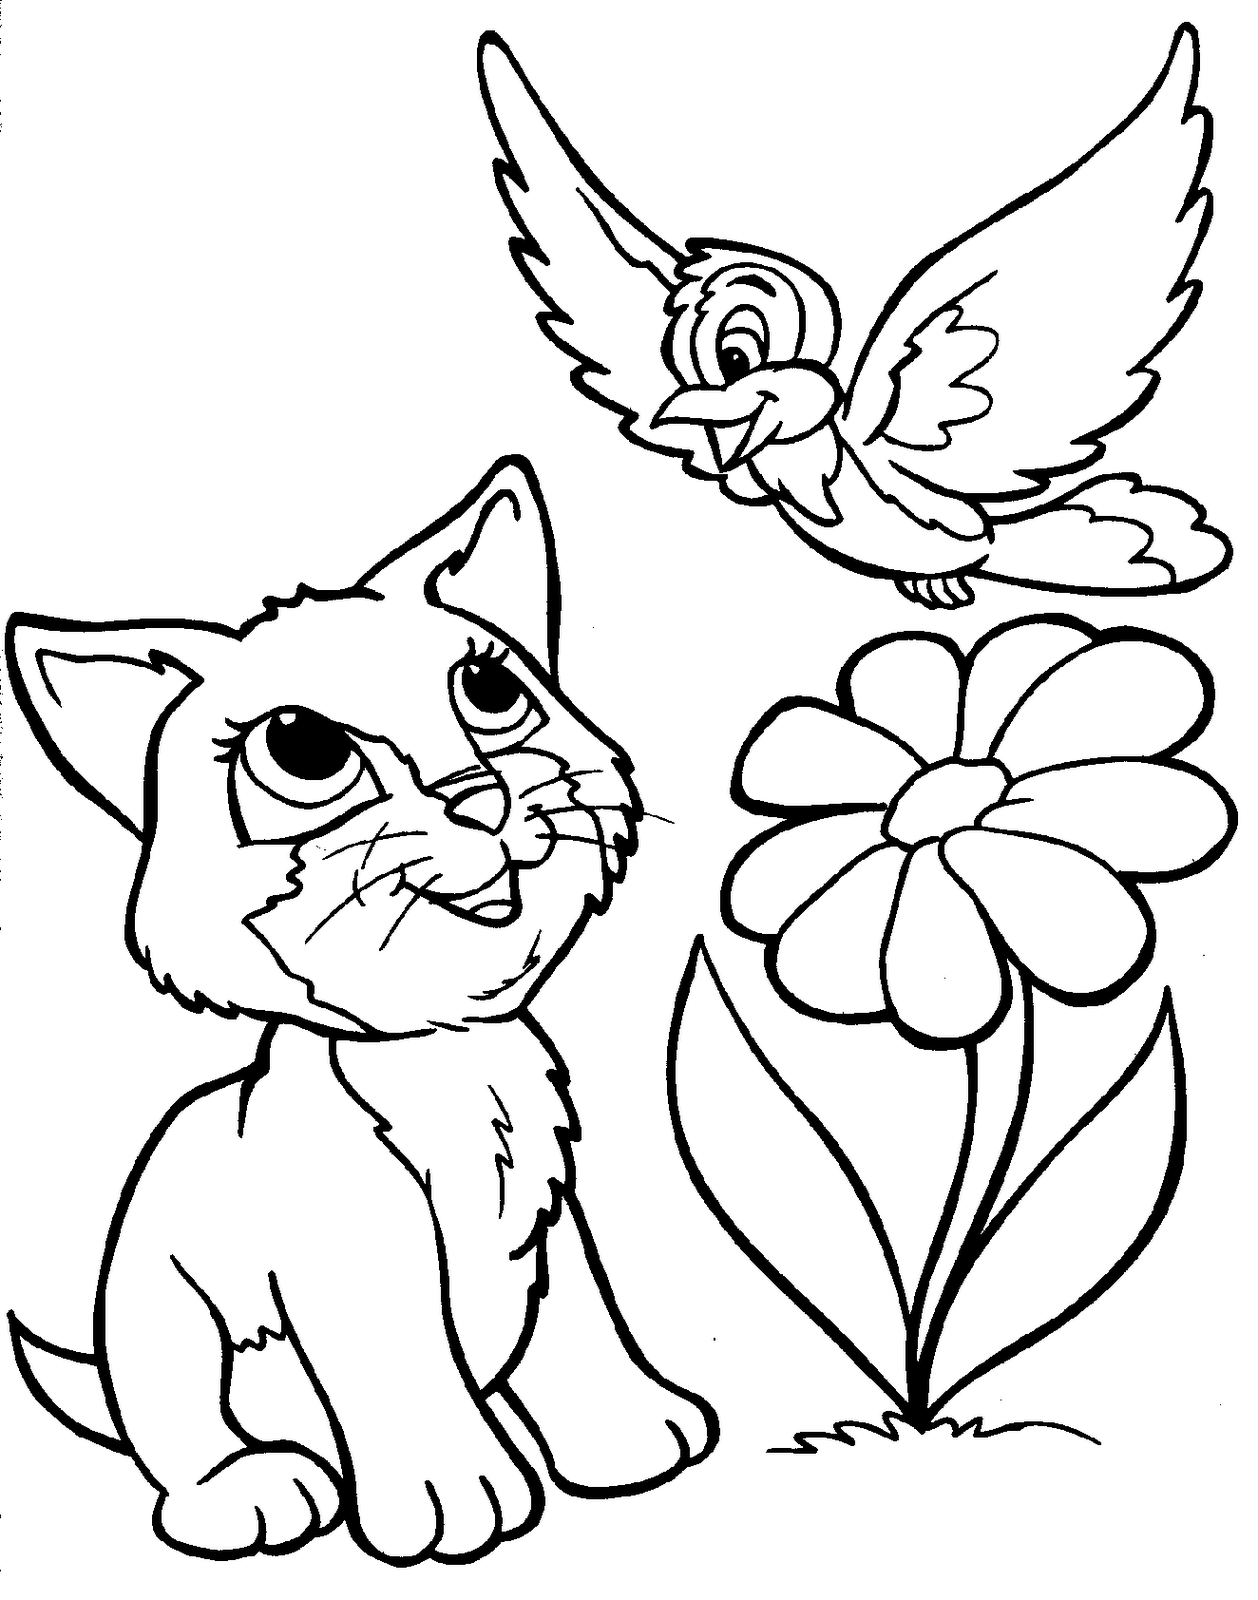 animal coloring pages for kids cartoon animals all coloring page wecoloringpagecom coloring kids pages for animal